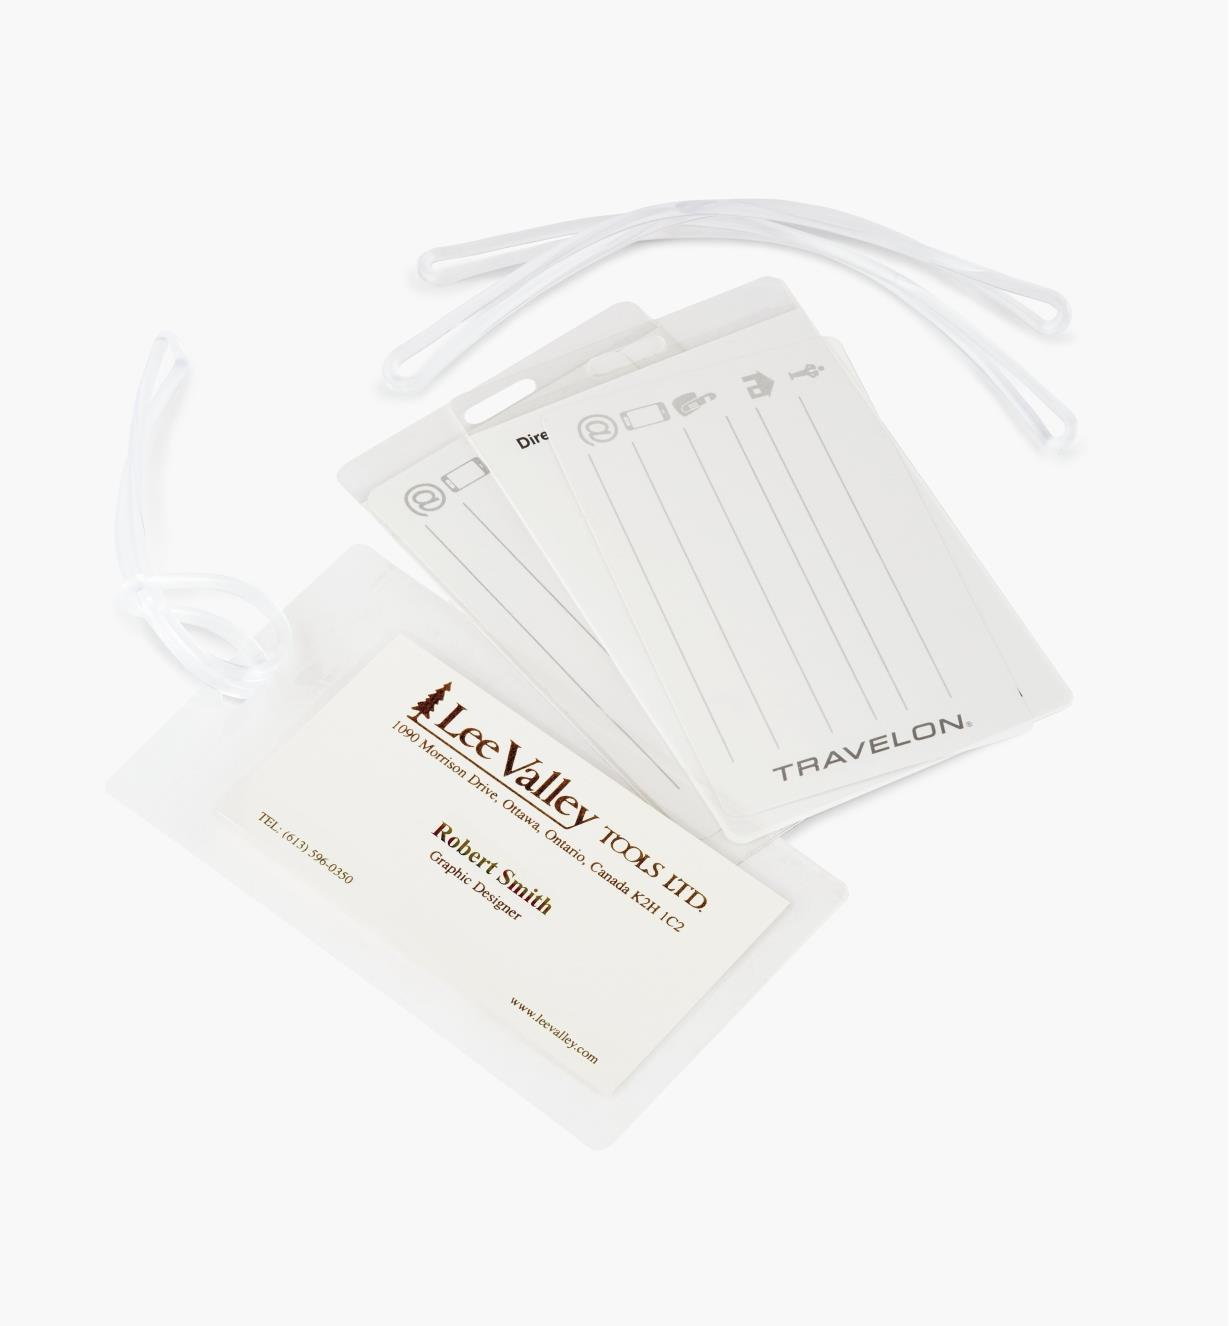 GB390 - Self-Laminating ID Tags, pkg. of 3